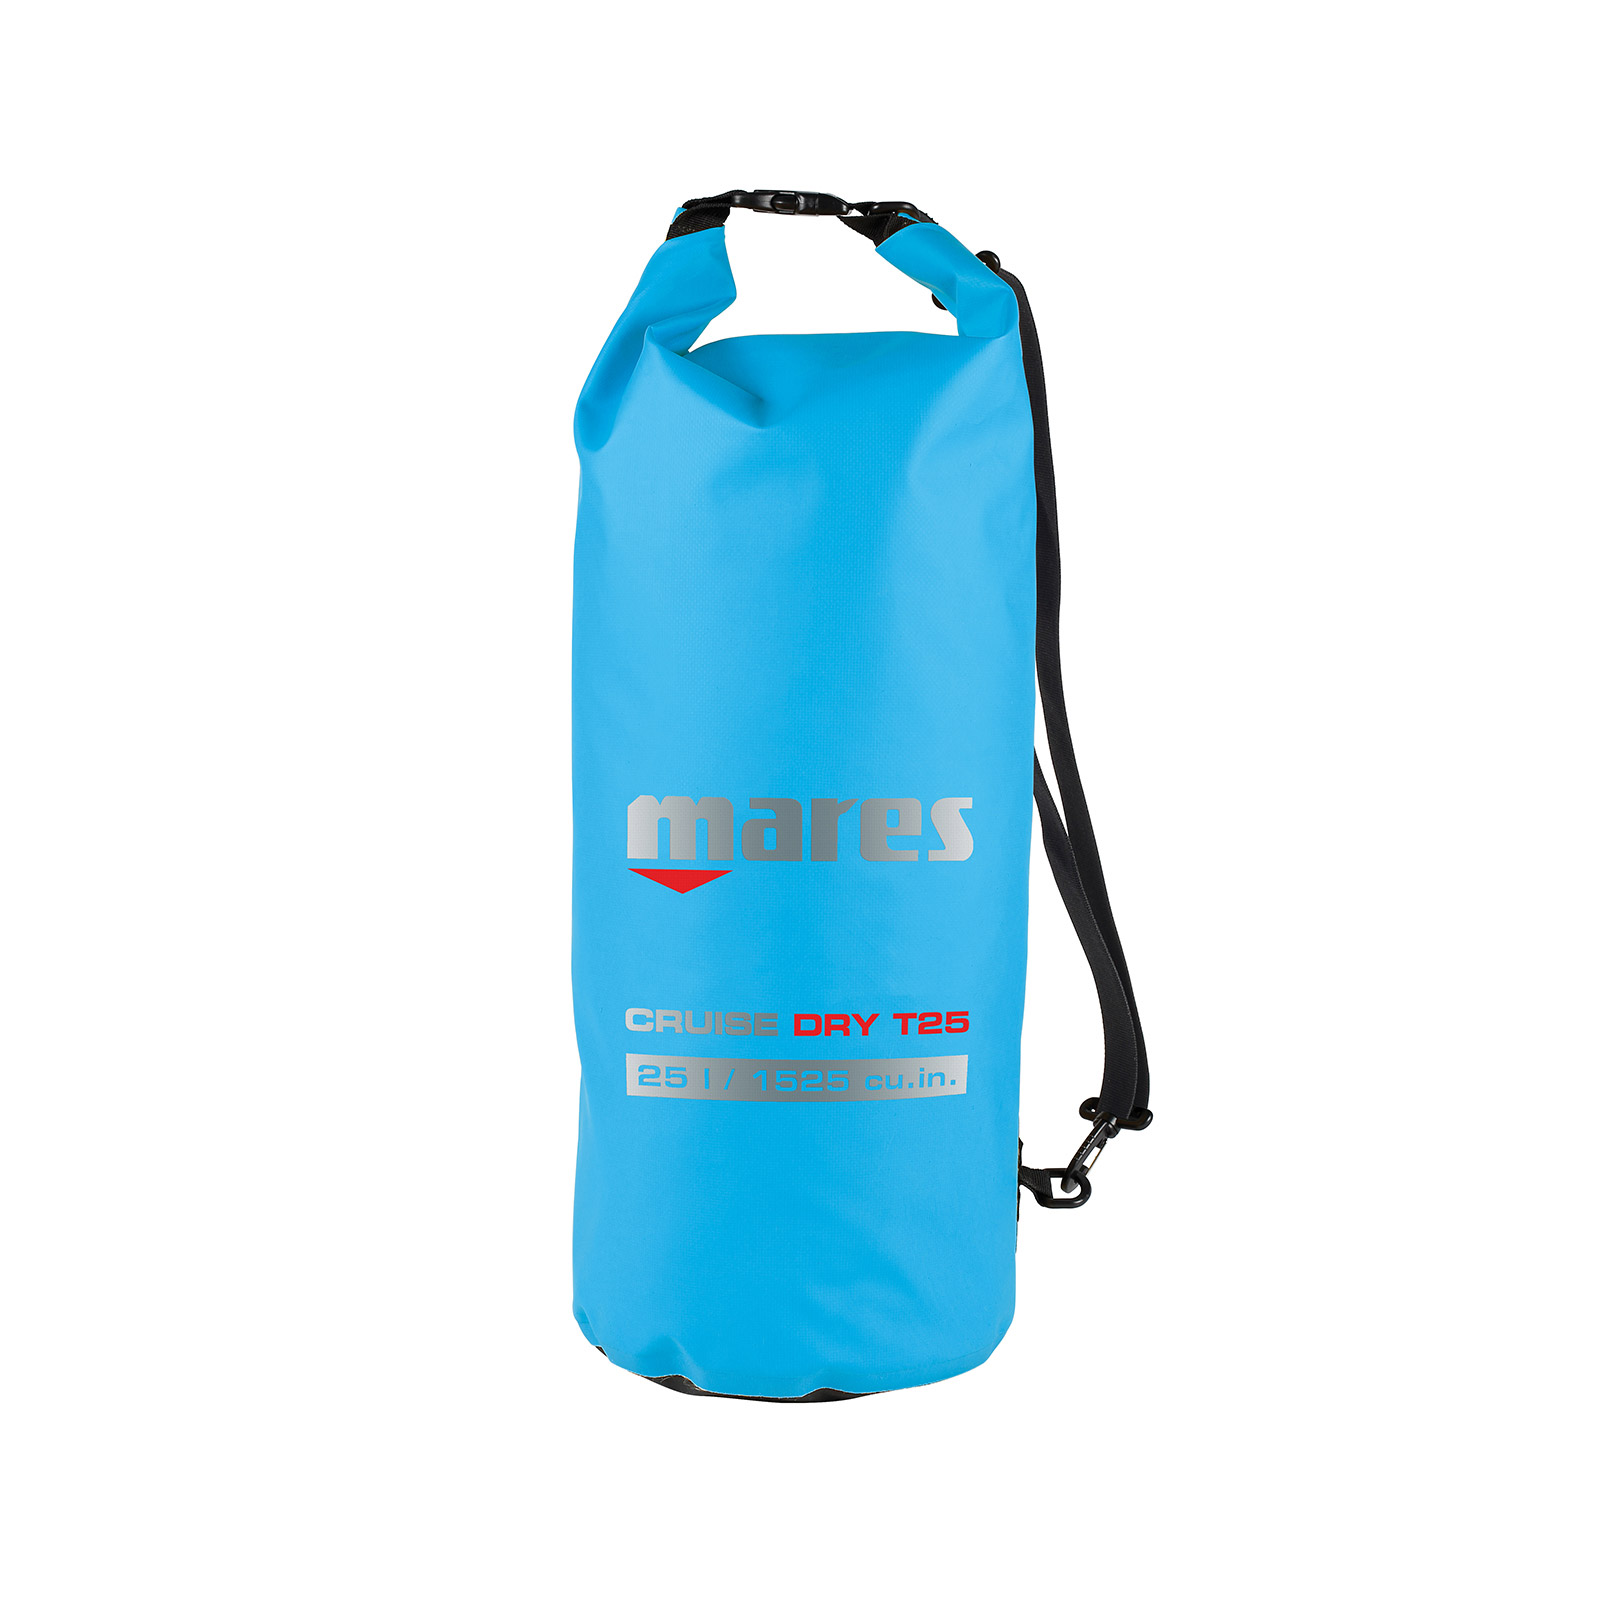 MARES - Cruise Drybag T25 Trockensack